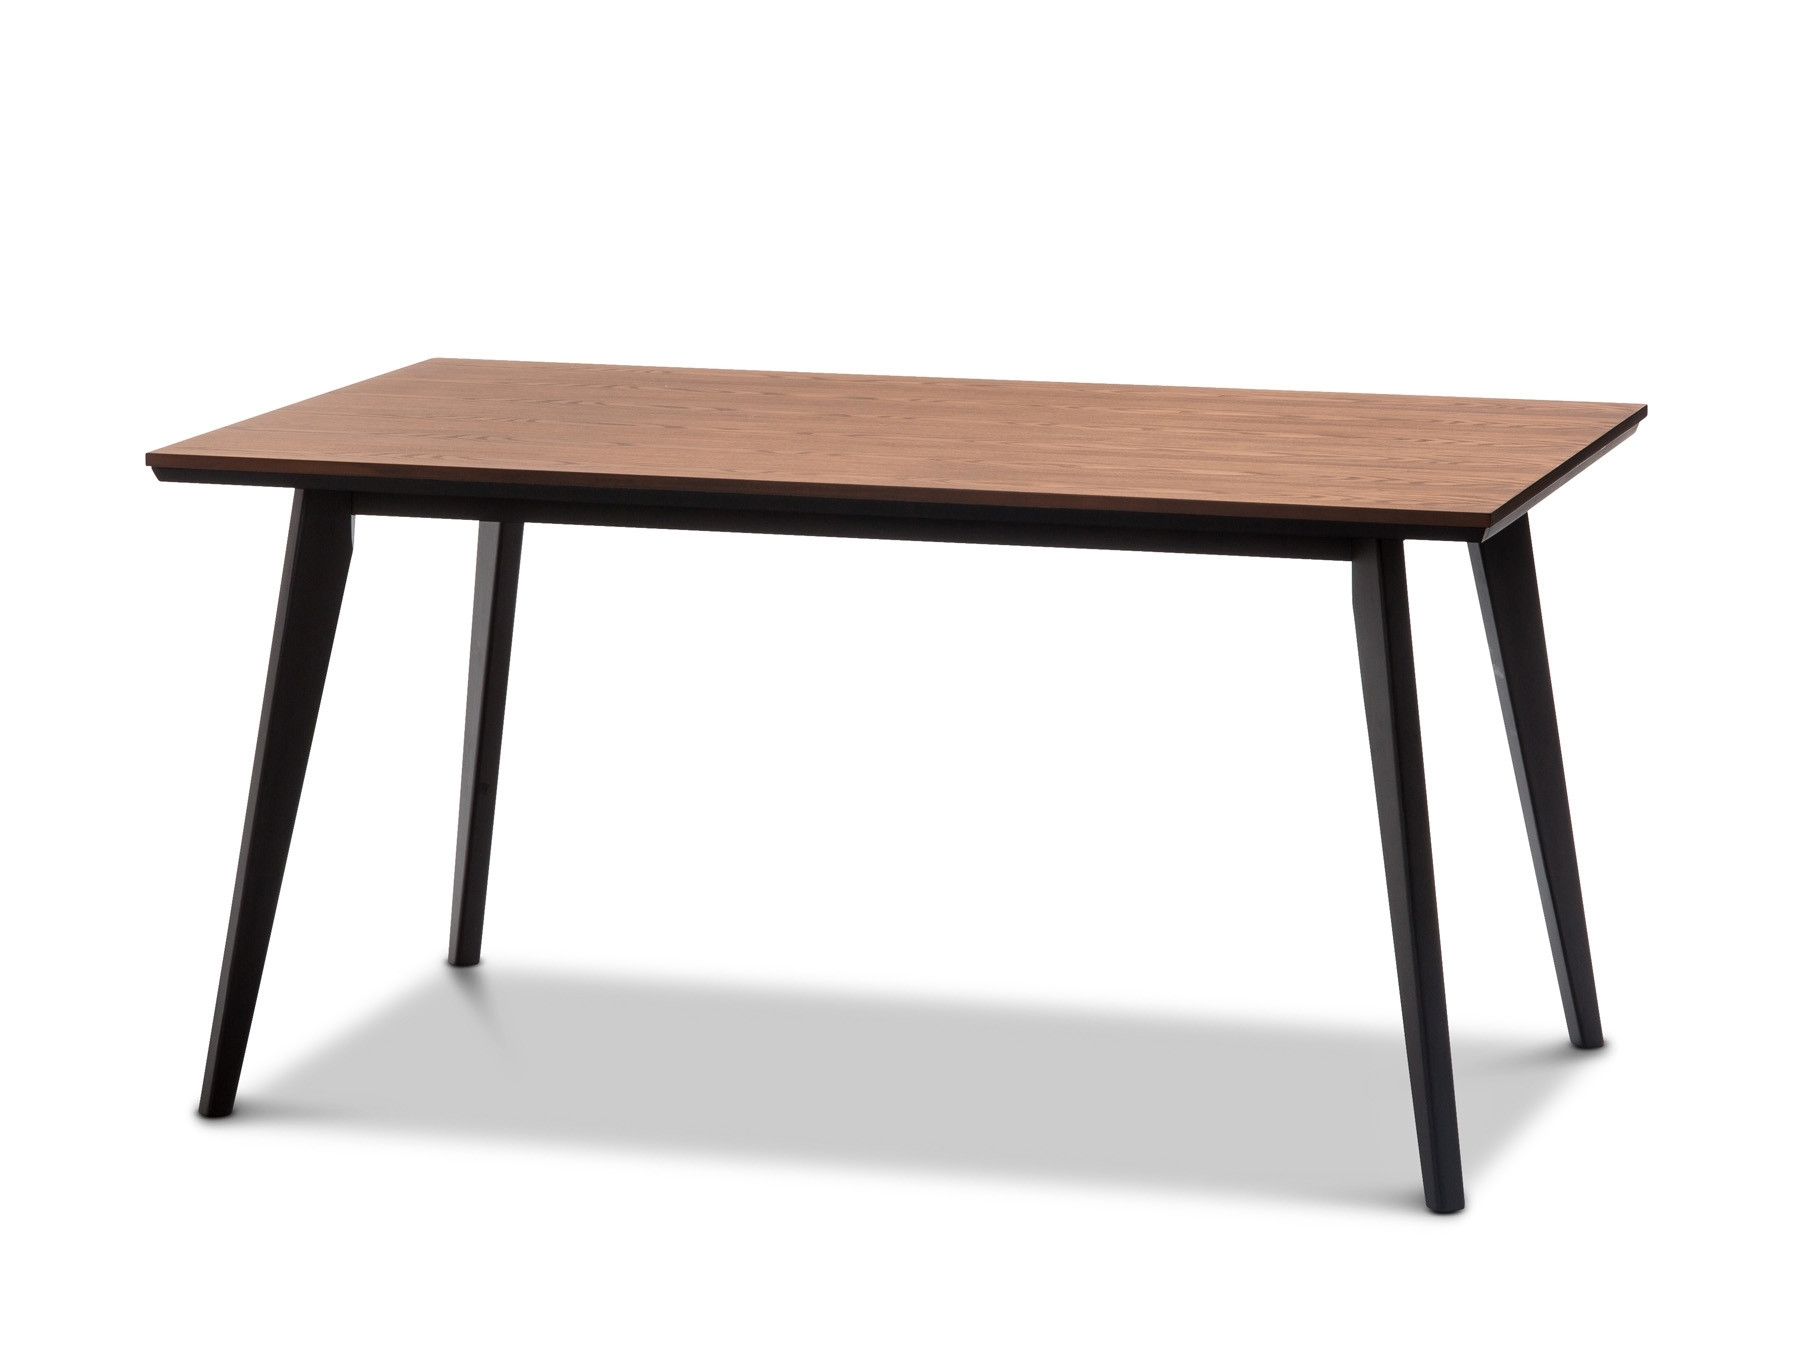 Wyatt Dining Table | Temple & Webster Within Latest Wyatt Dining Tables (View 14 of 20)